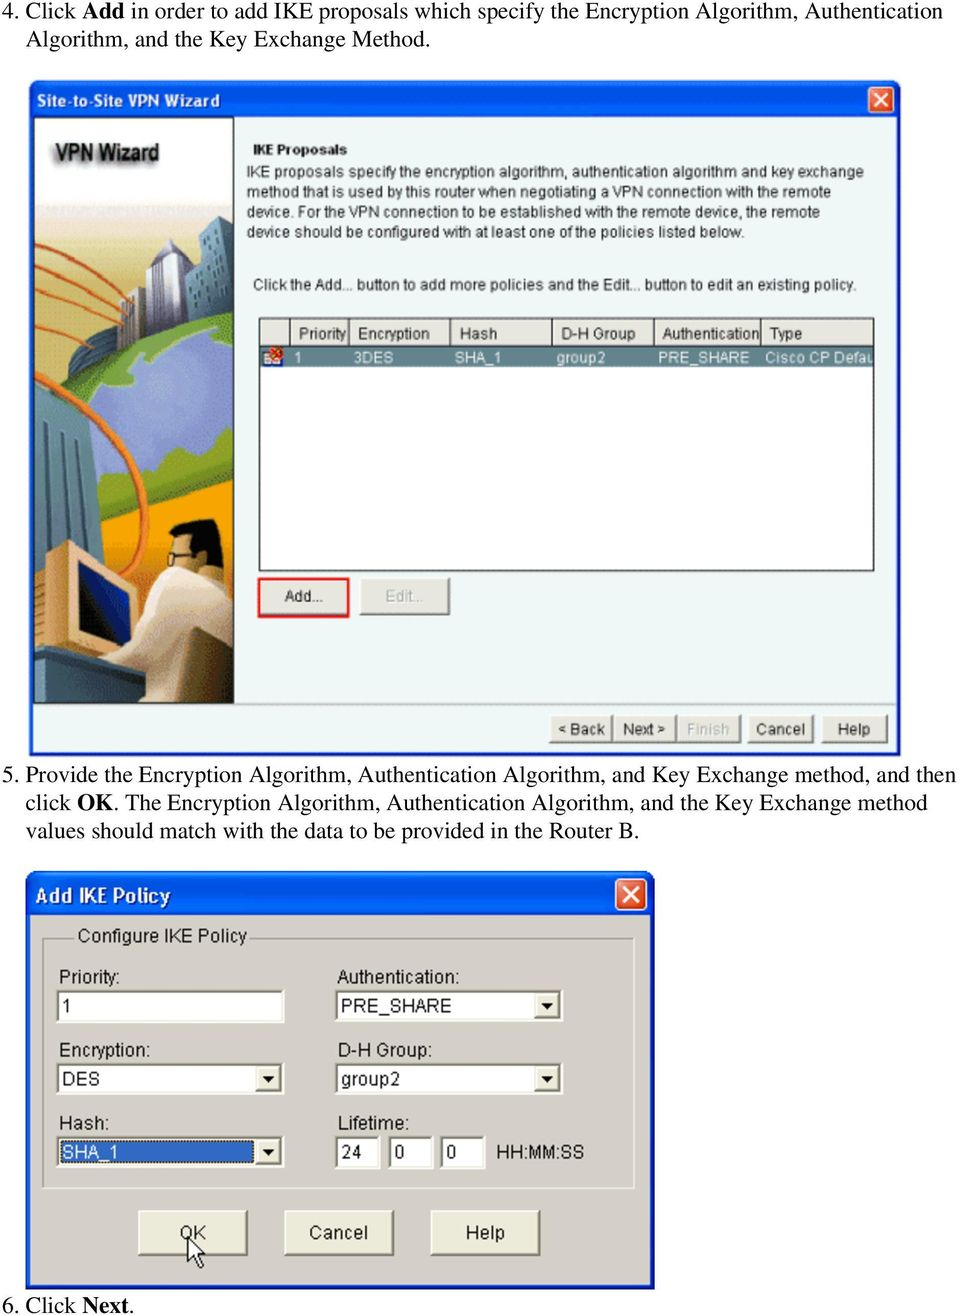 Provide the Encryption Algorithm, Authentication Algorithm, and Key Exchange method, and then click